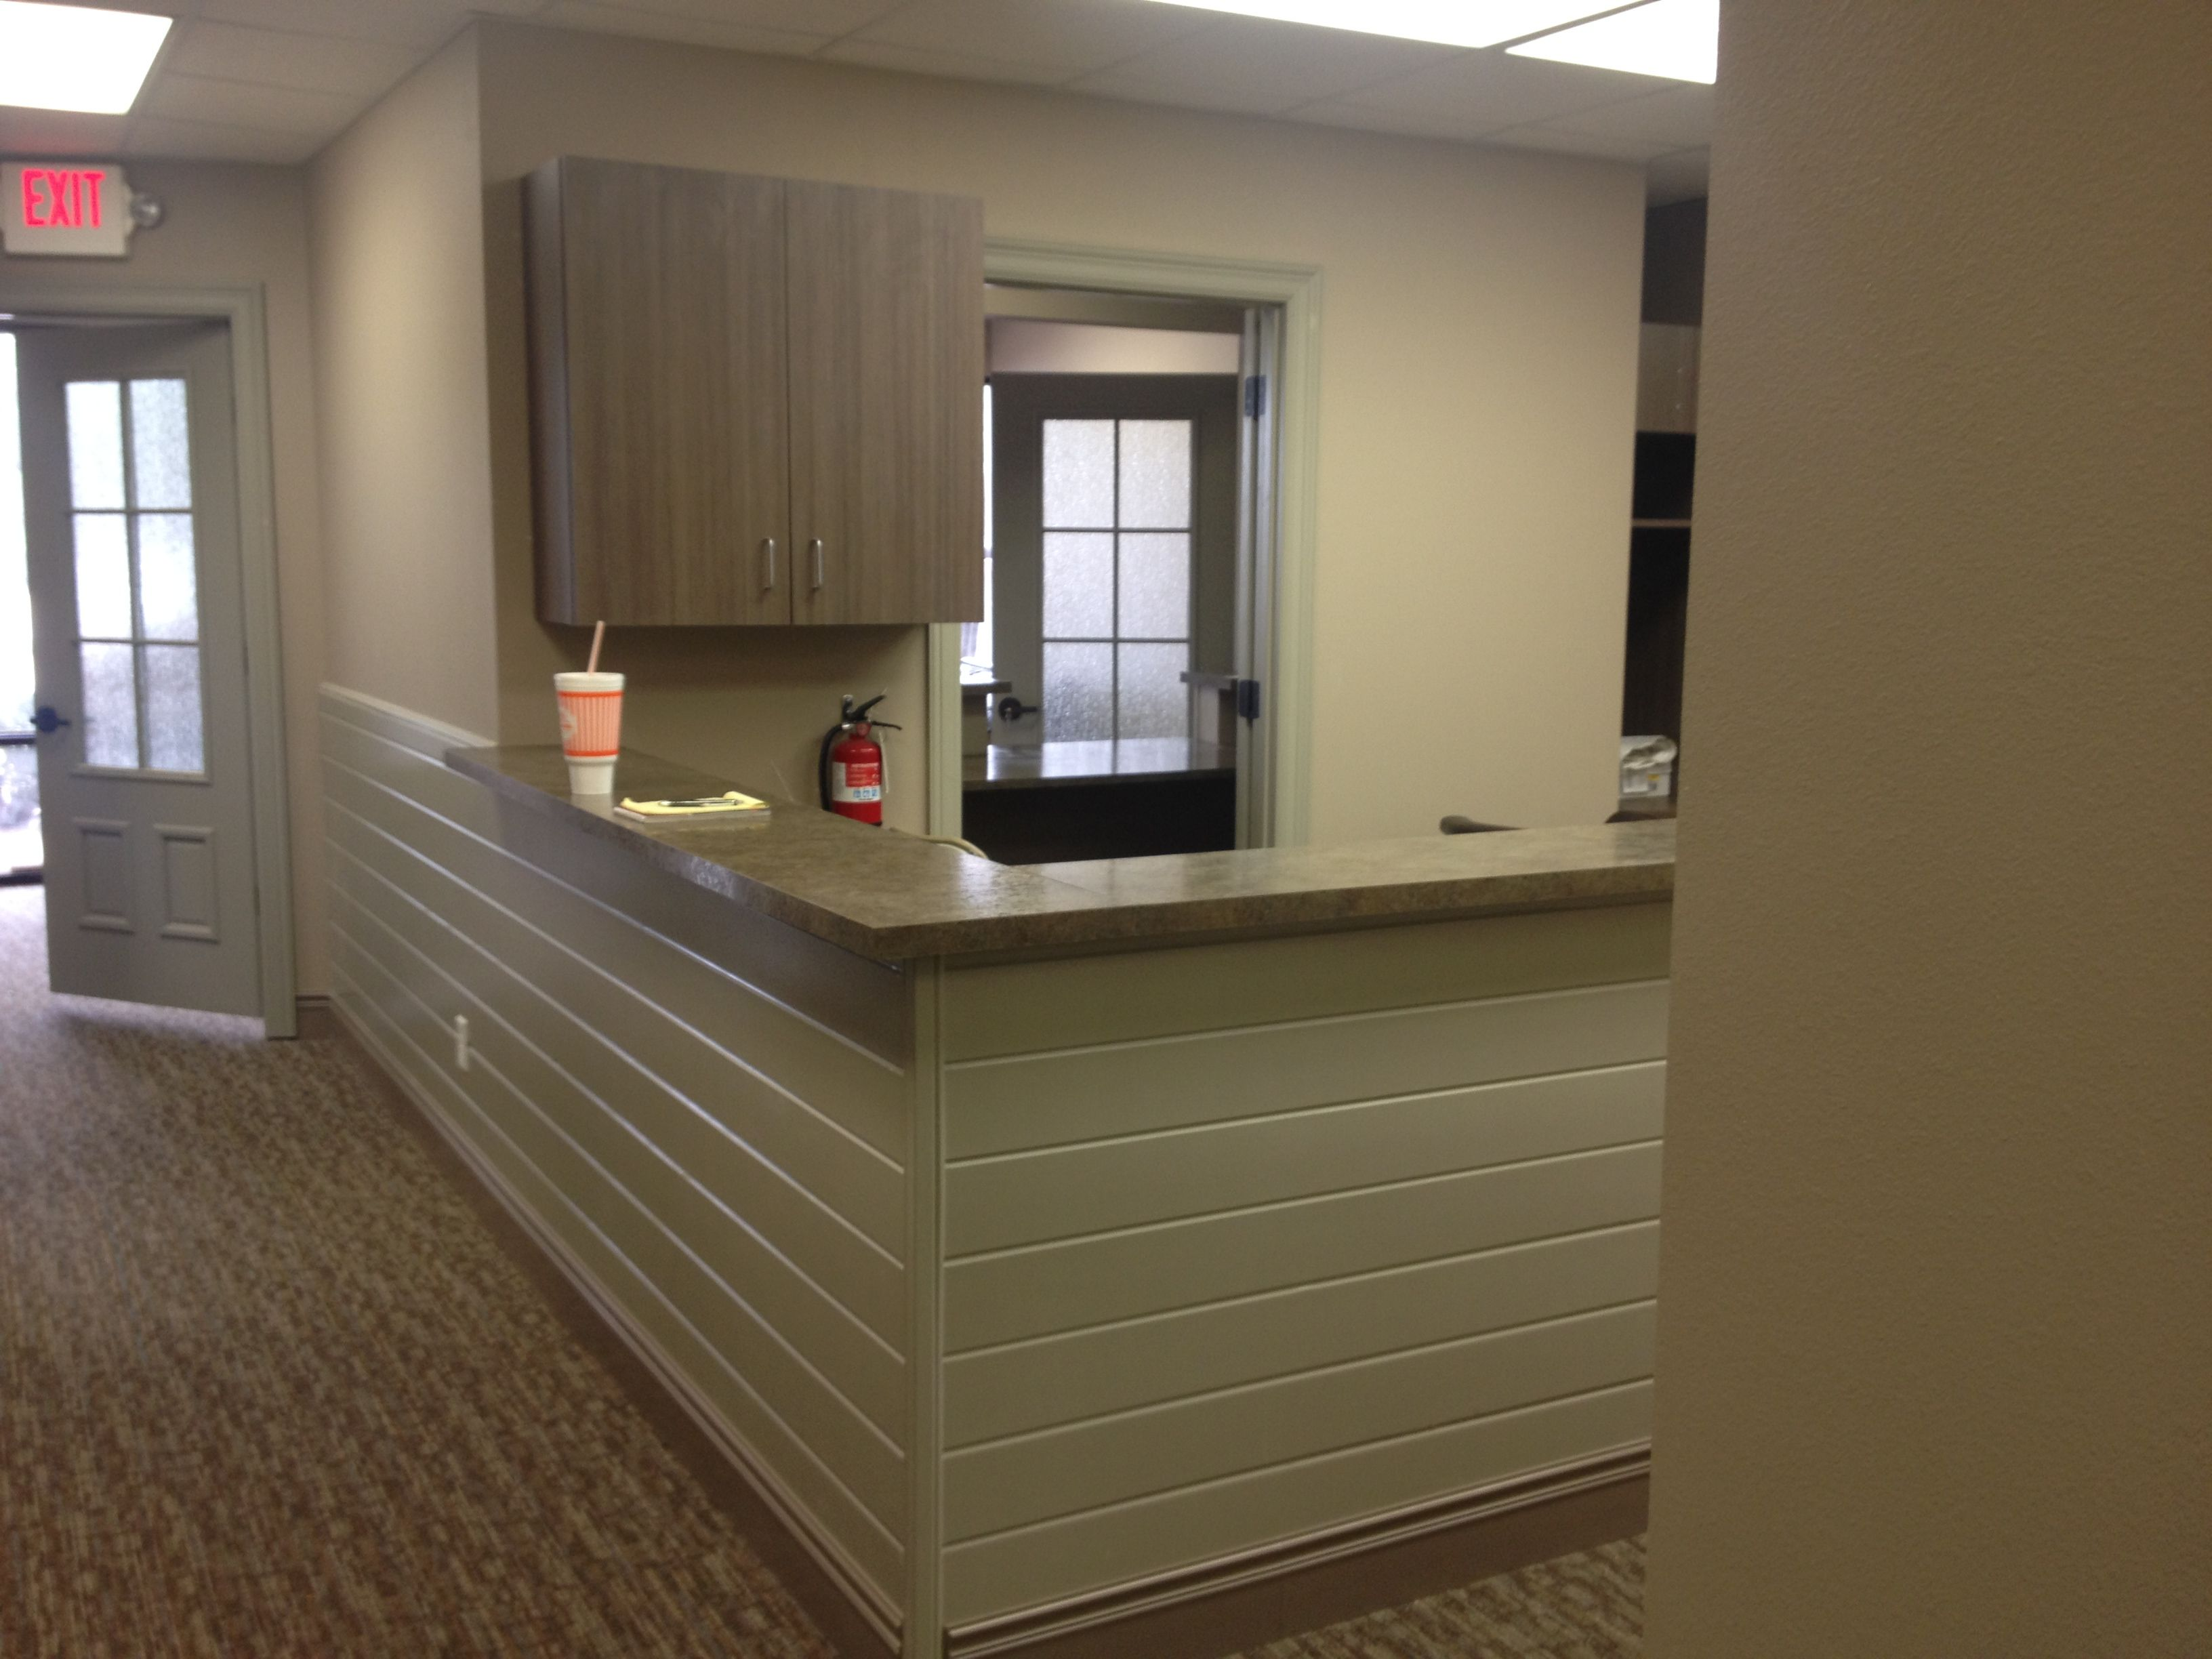 Cabinets, Doors, Wainscoting, And Counter Tops We Installed At Dental  Office In Midland